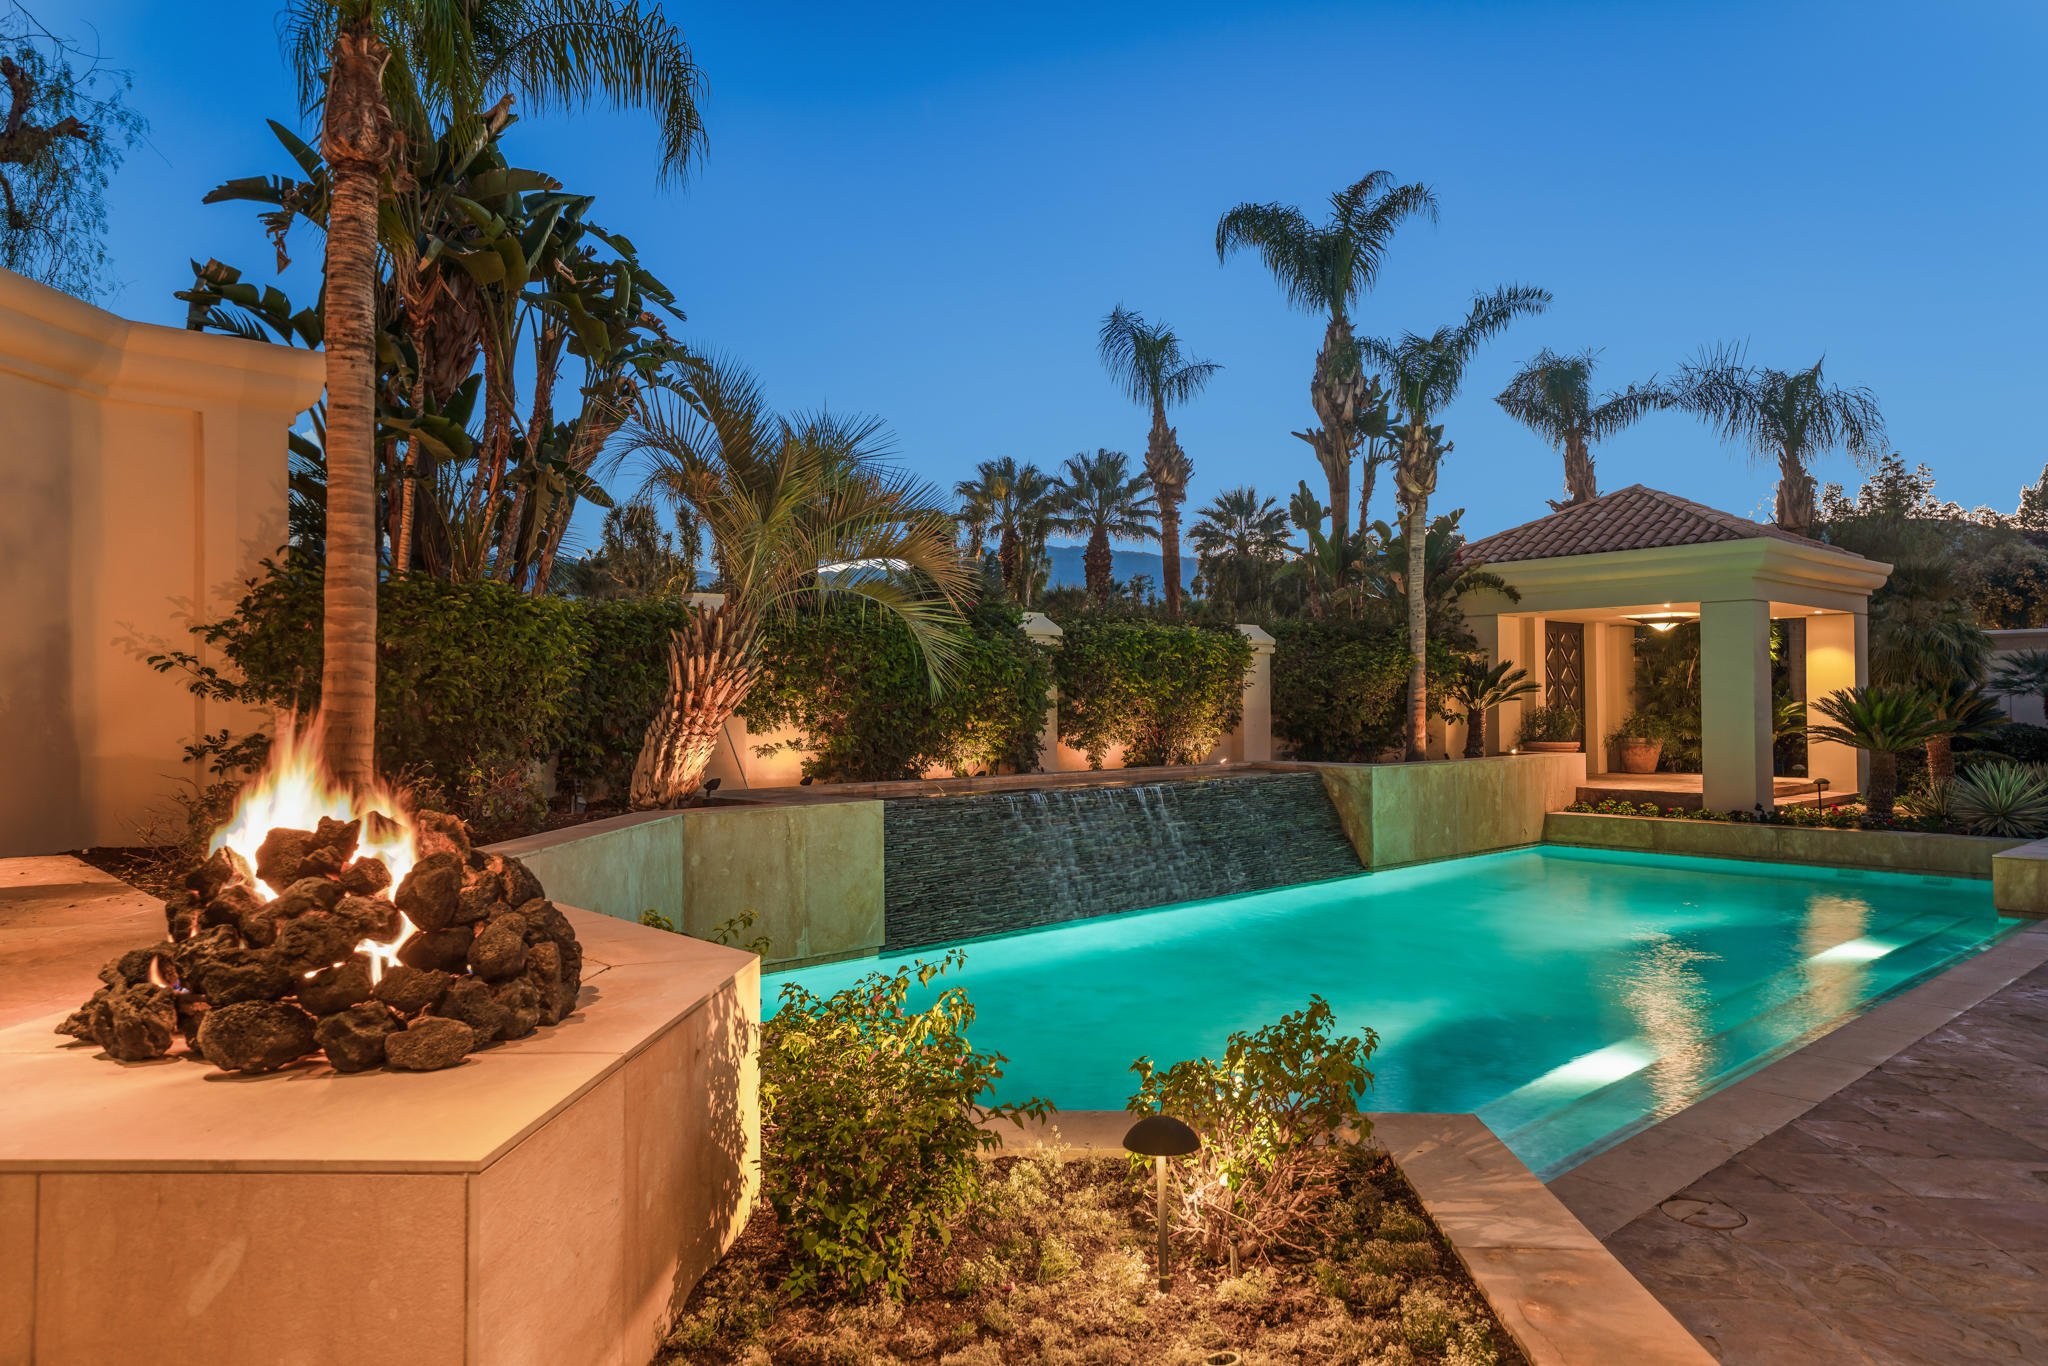 74300 Quail Lakes Drive, Indian Wells, California 92210, 5 Bedrooms Bedrooms, ,10 BathroomsBathrooms,Residential,For Sale,74300 Quail Lakes Drive,219044106